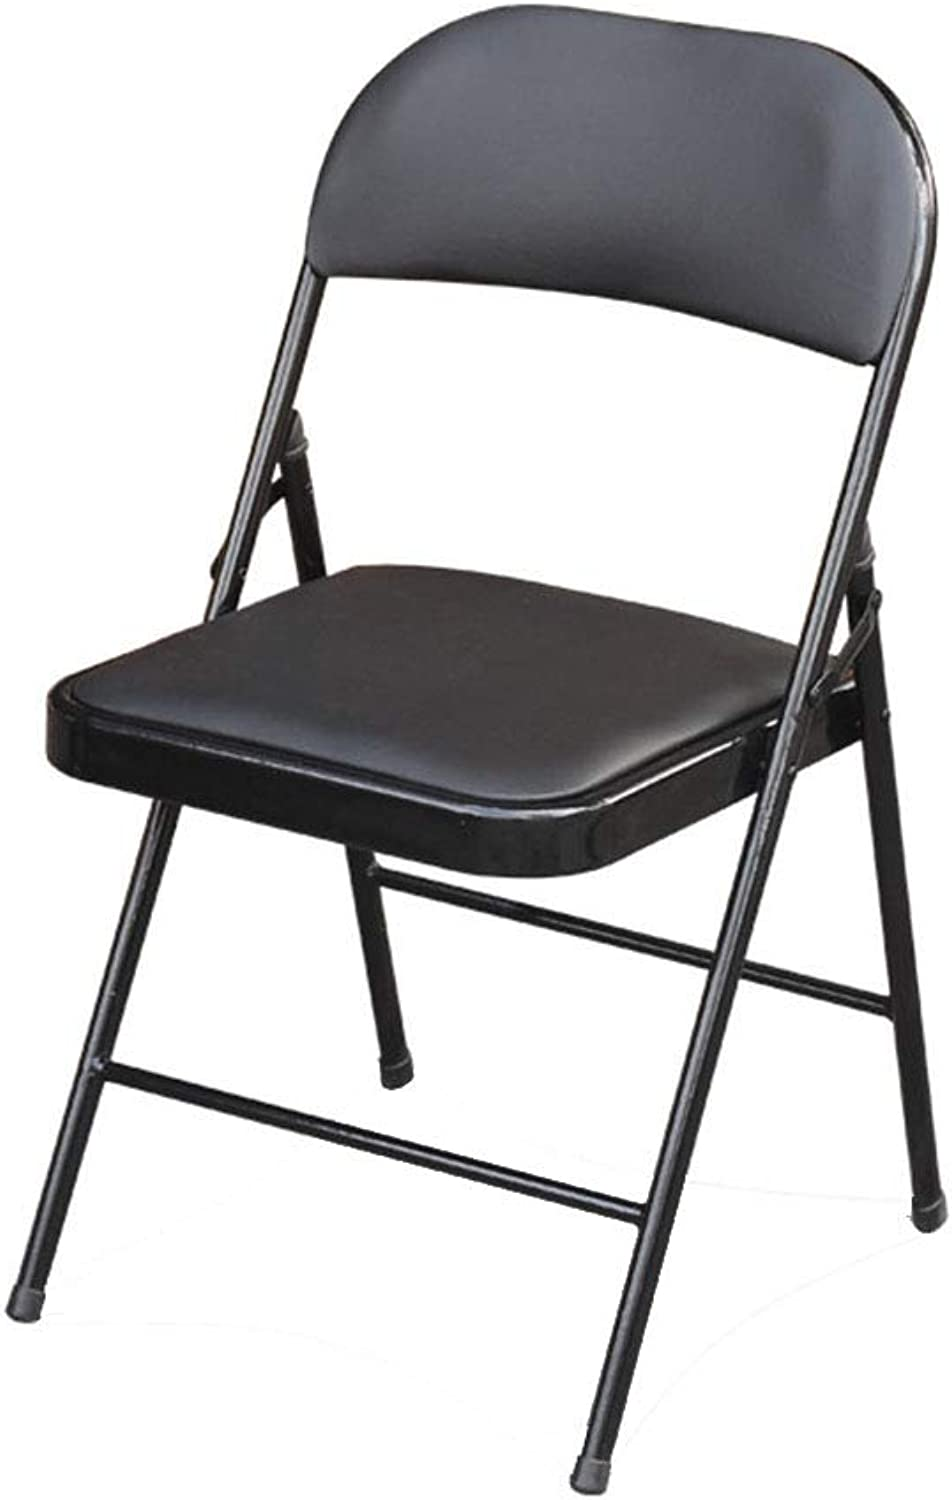 Folding Chair Home Meeting Office Computer Simple Stool(45  45  79CM) (color   Black)